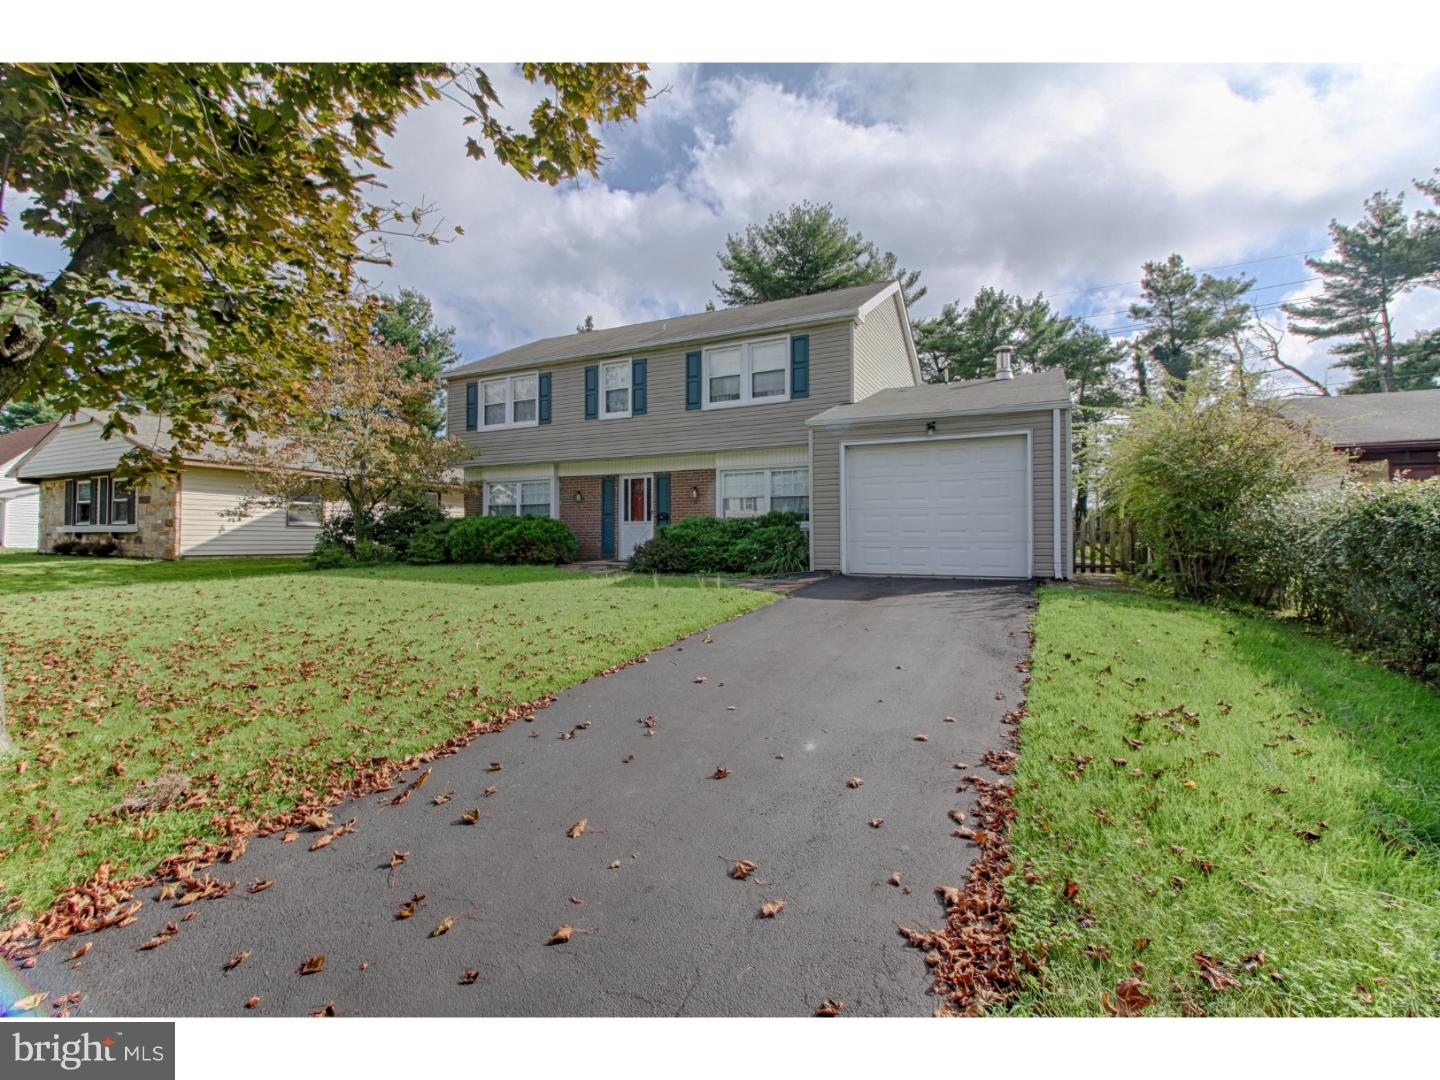 Single Family Home for Sale at 22 HAMPTON Lane Willingboro Township, New Jersey 08046 United States